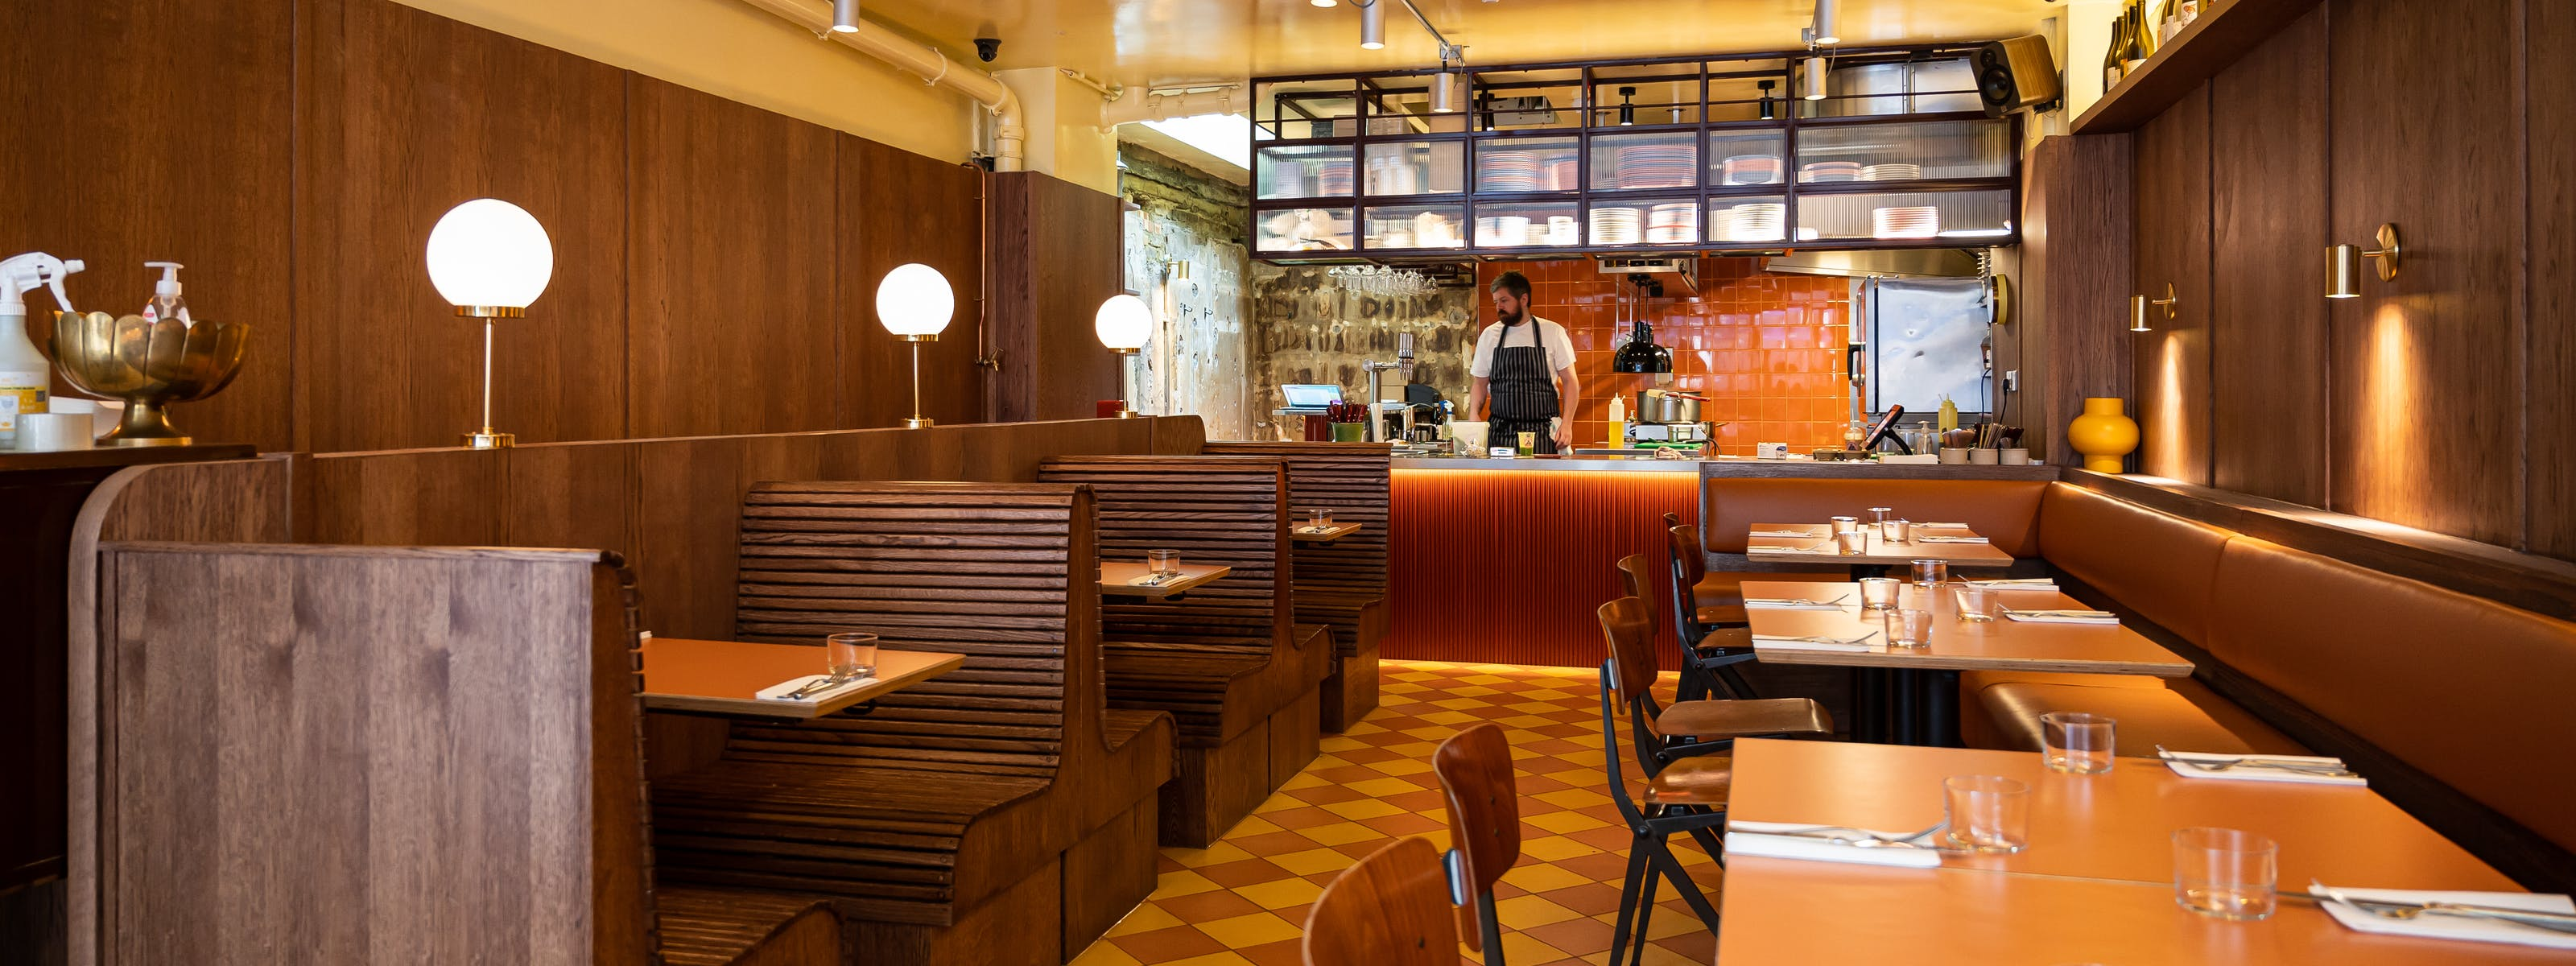 Where To Eat After A Bad Week - London - The Infatuation